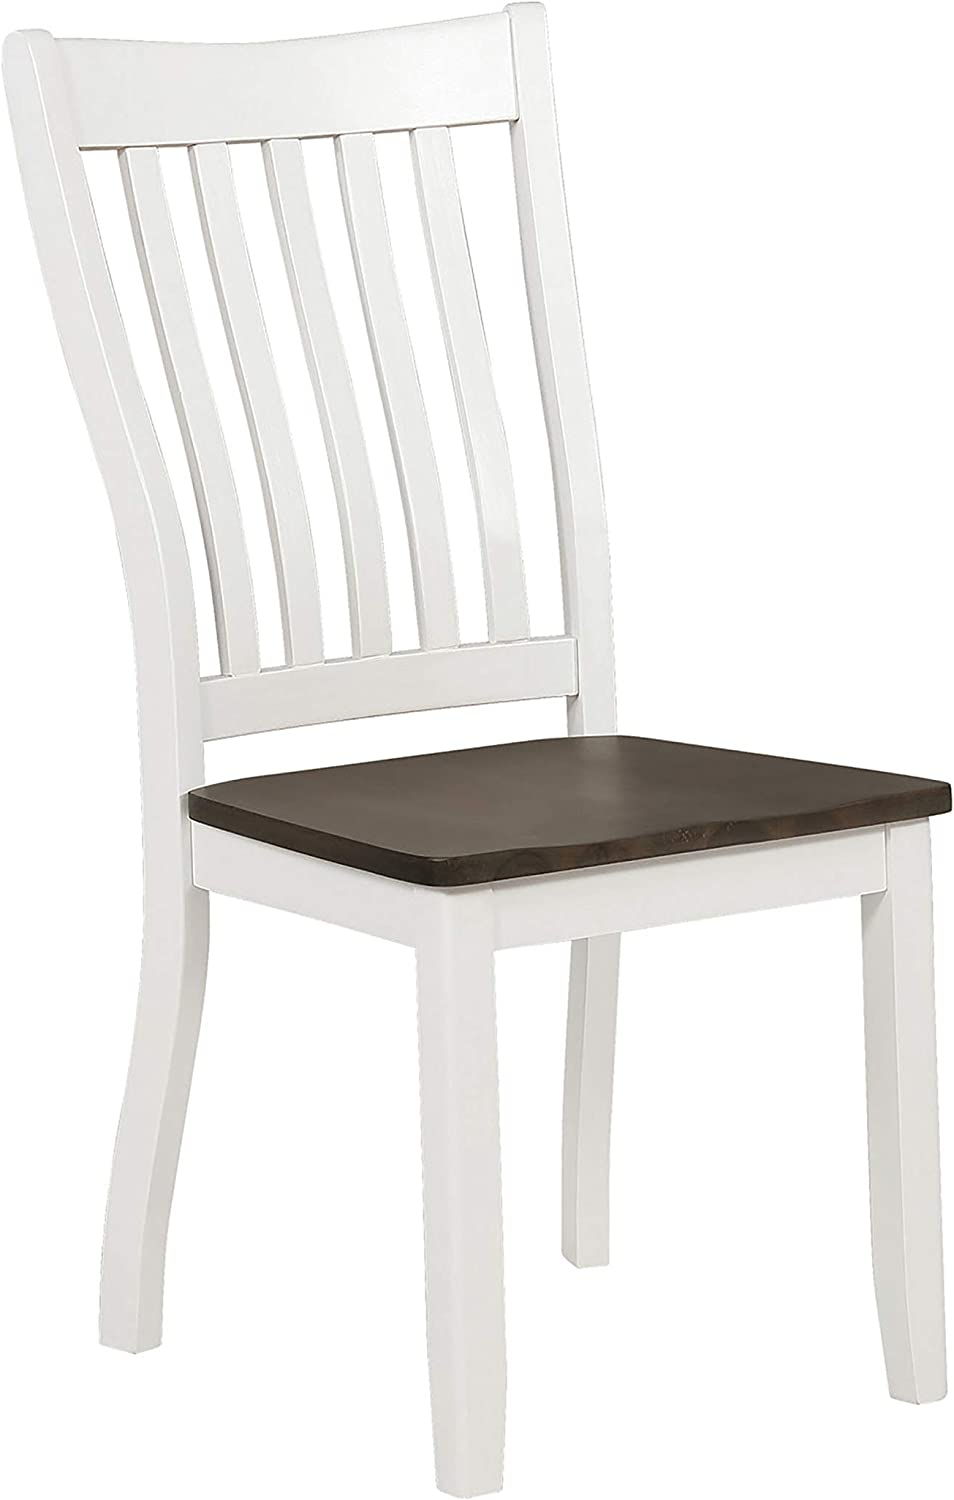 Coaster Home Furnishings Kingman Slat Back Espresso and White (Set of 2) Dining Chair